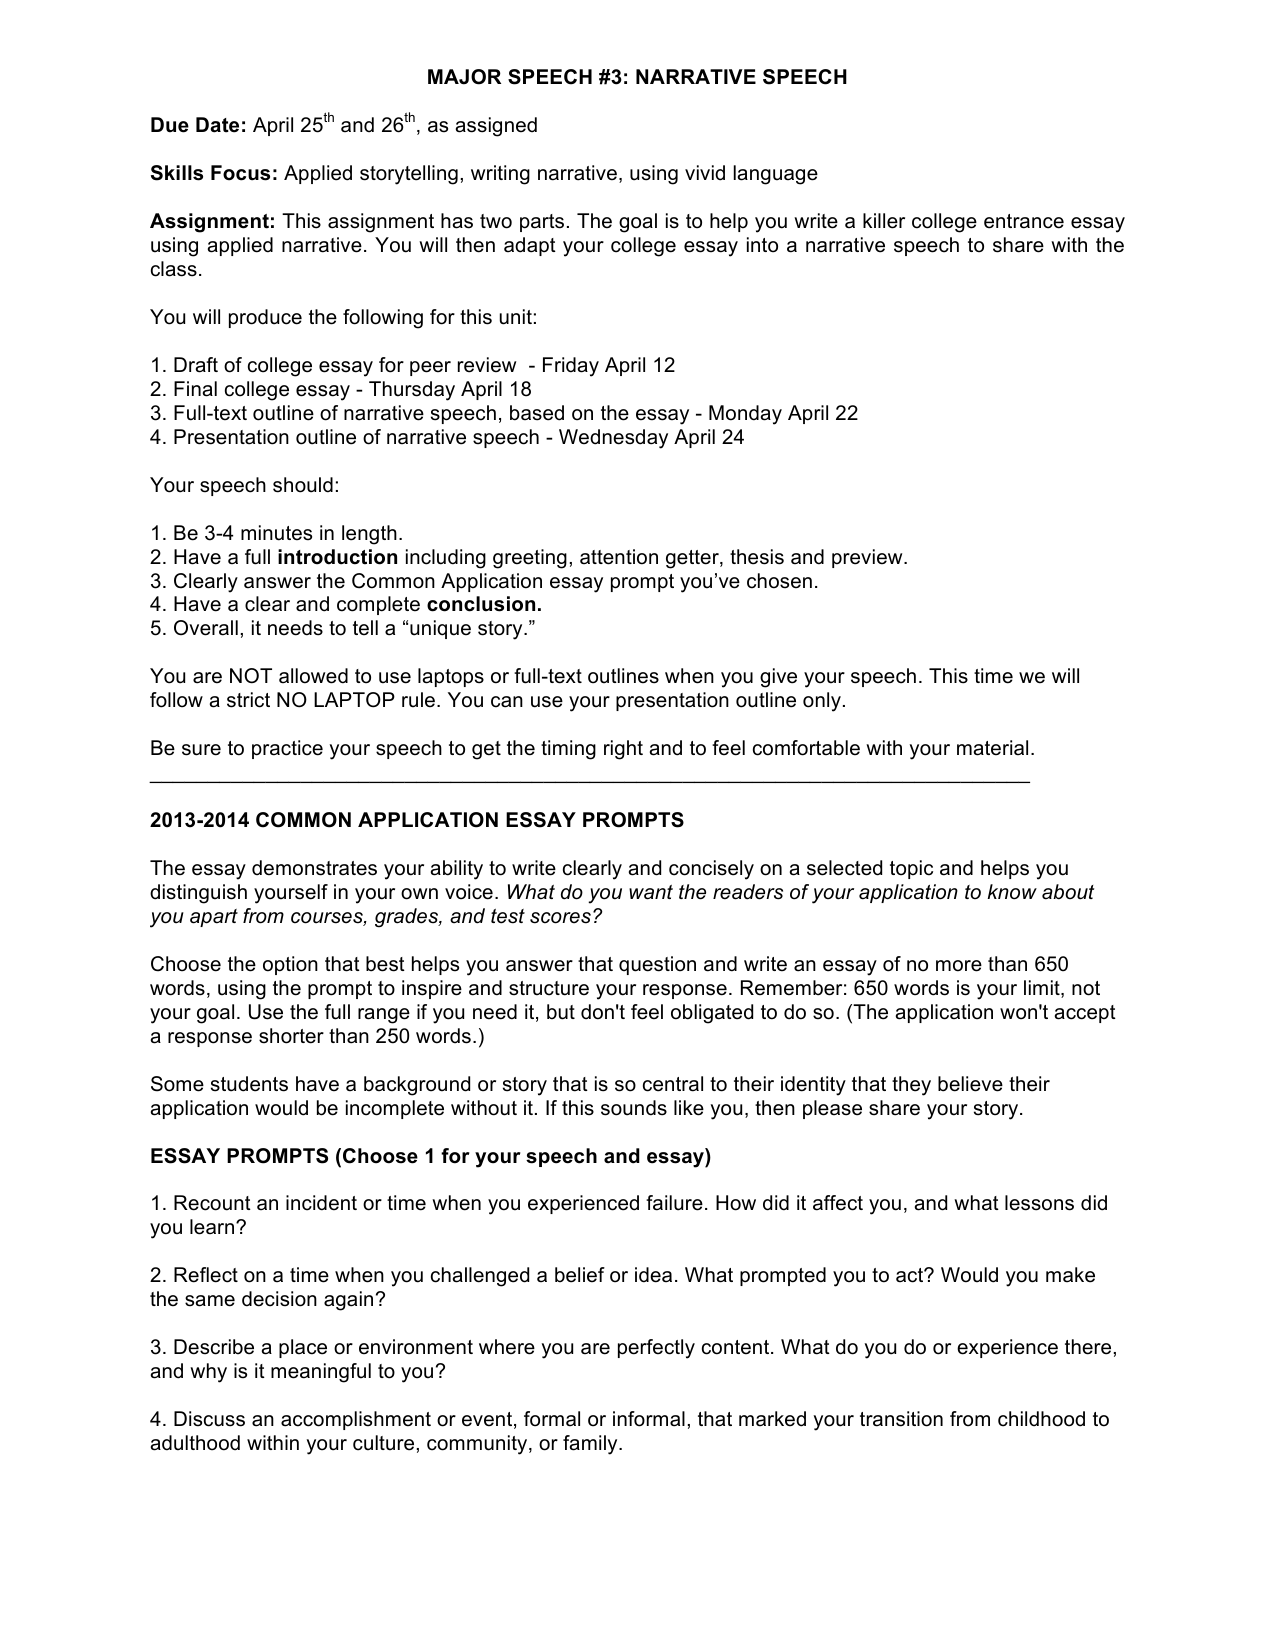 Common App Essay Examples 2014 Homework Academic Service